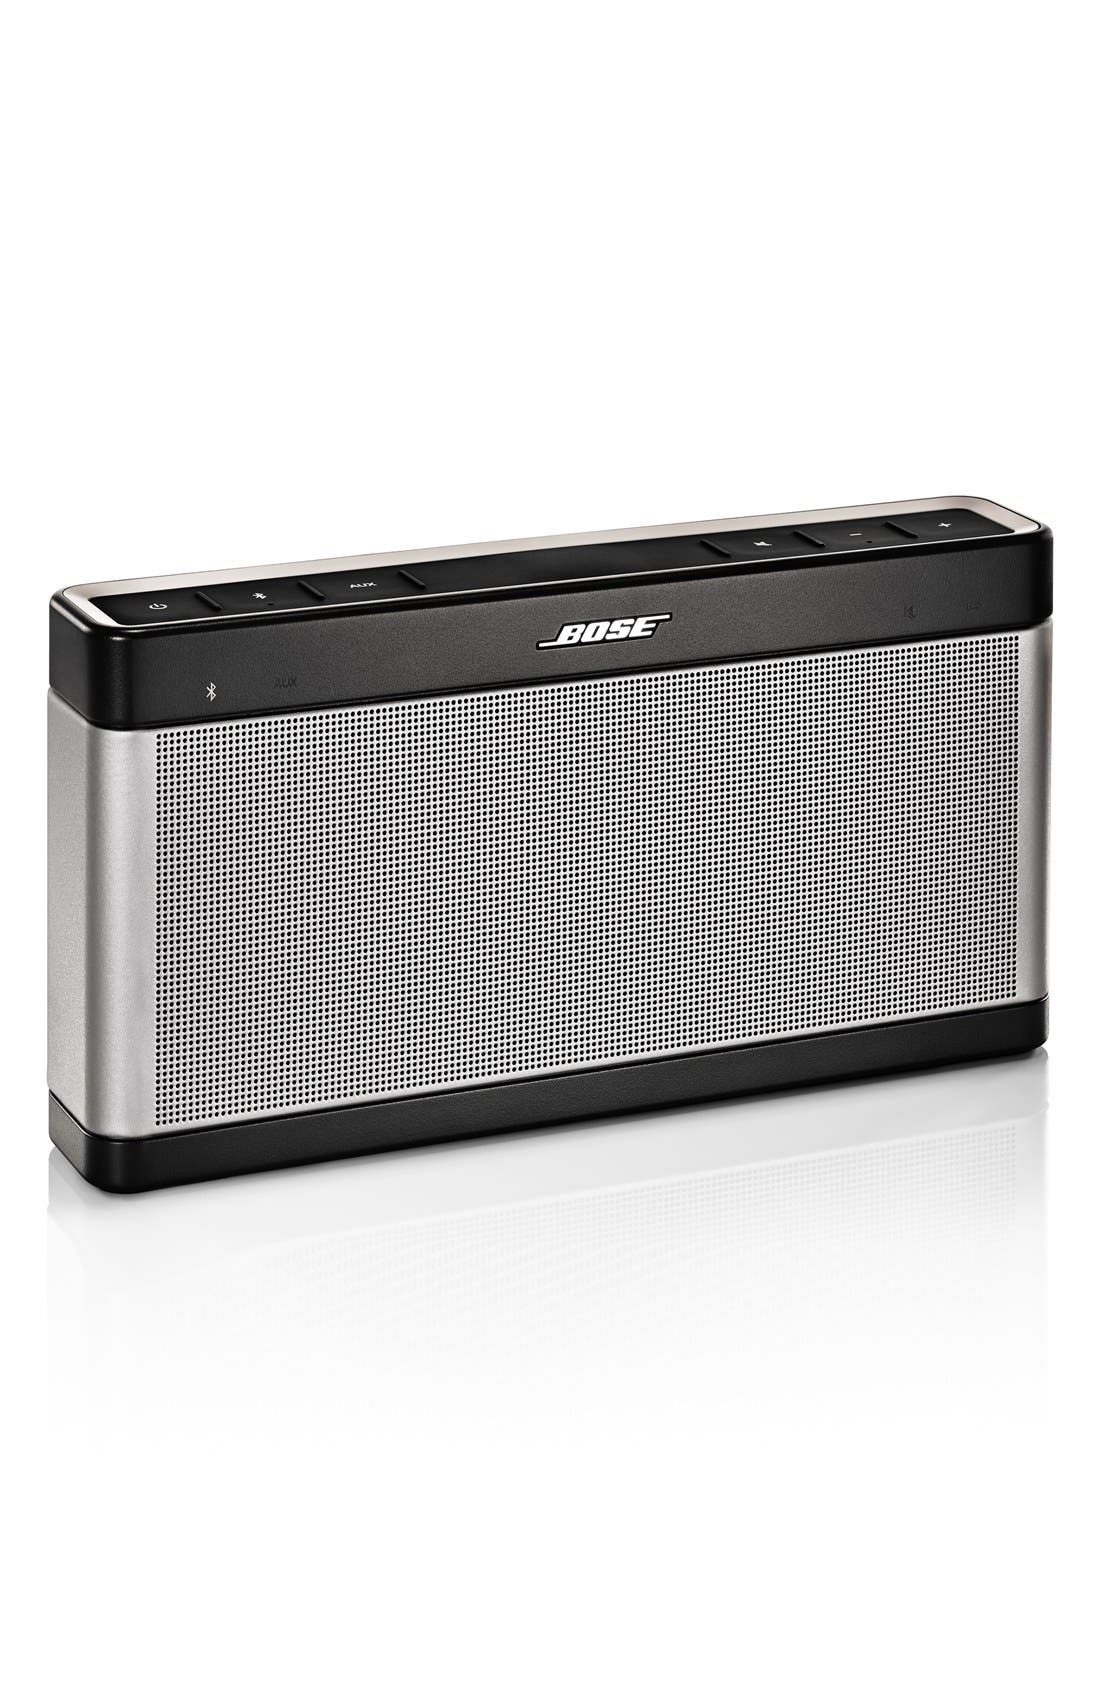 Main Image - Bose® SoundLink® Bluetooth® Mobile Speaker III